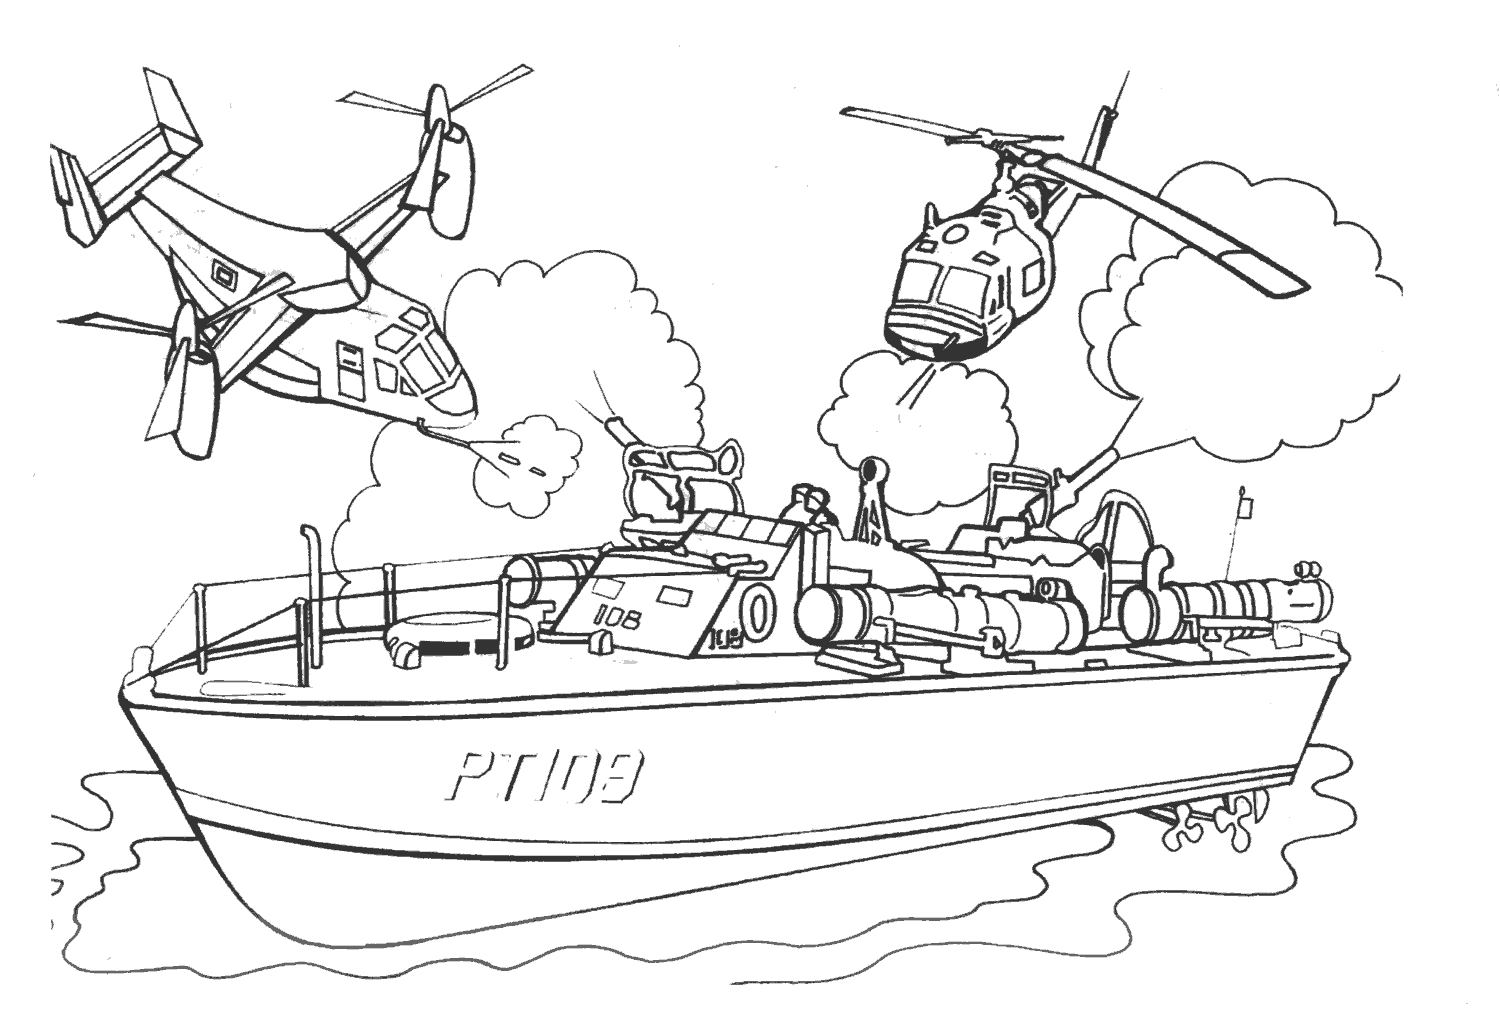 police boat coloring page aircraft carrier 137962 transportation printable coloring page police boat